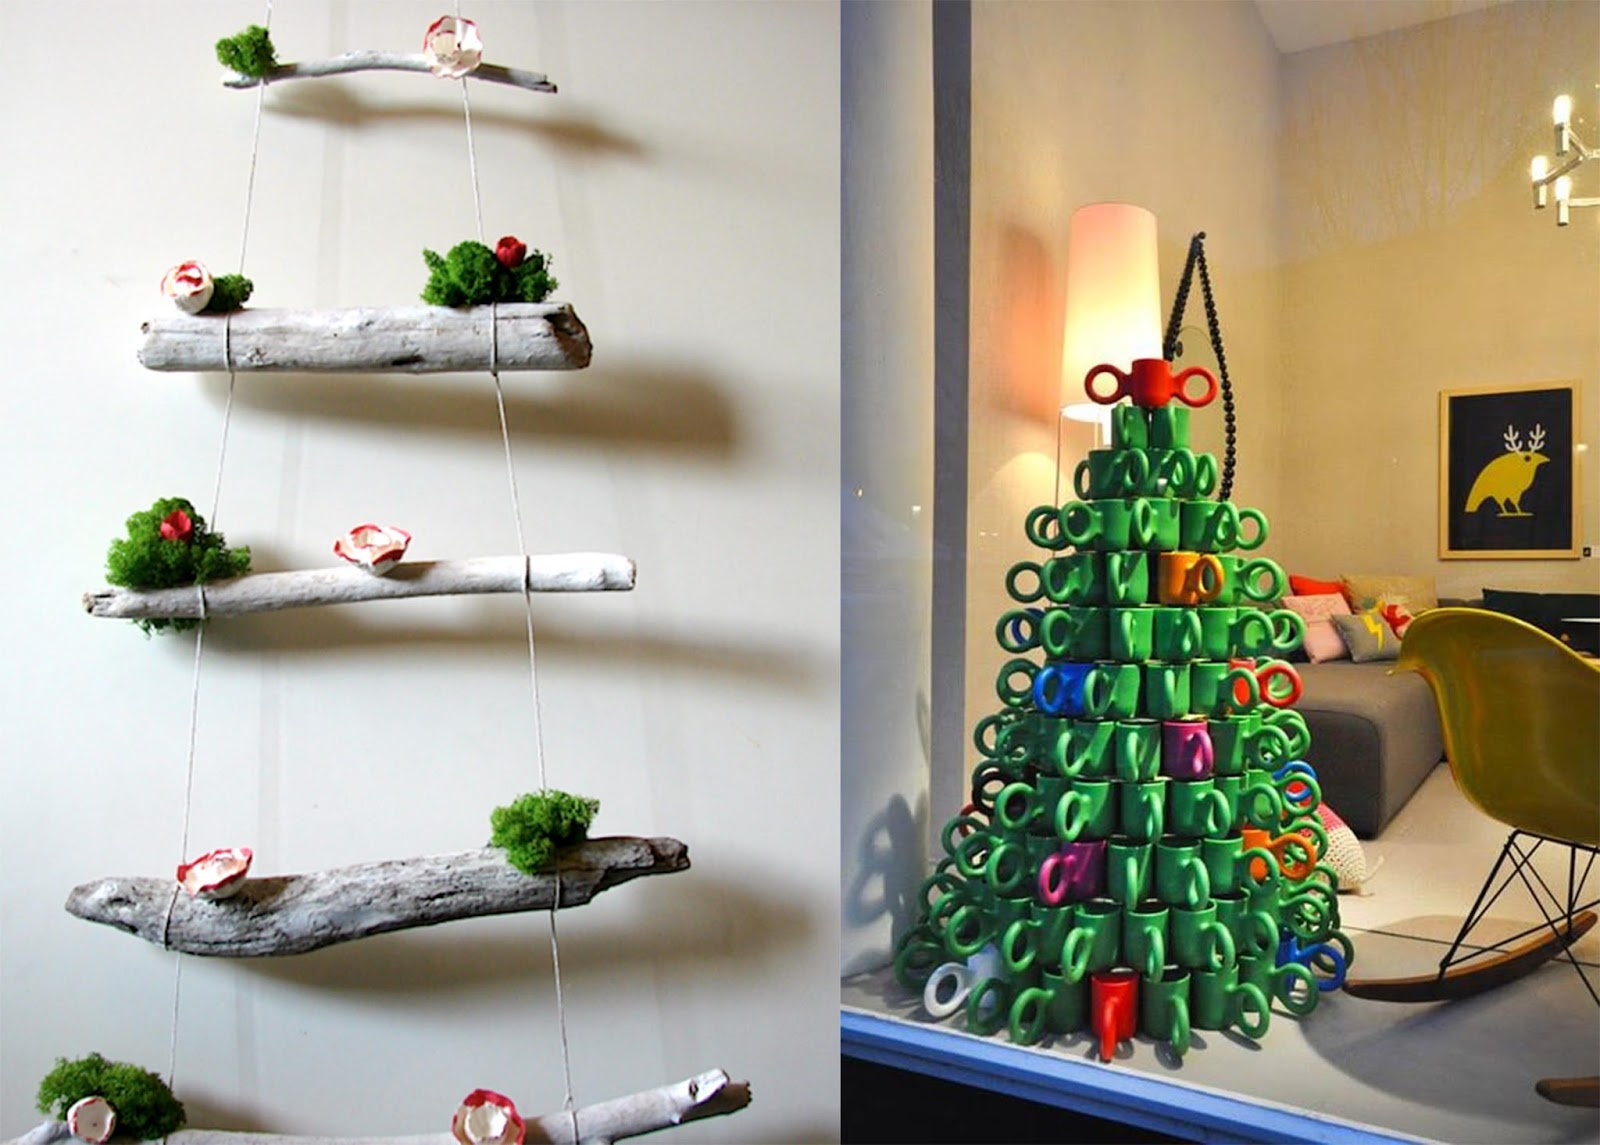 Idee originali per un natale creativo arc art blog by for Idee di casa